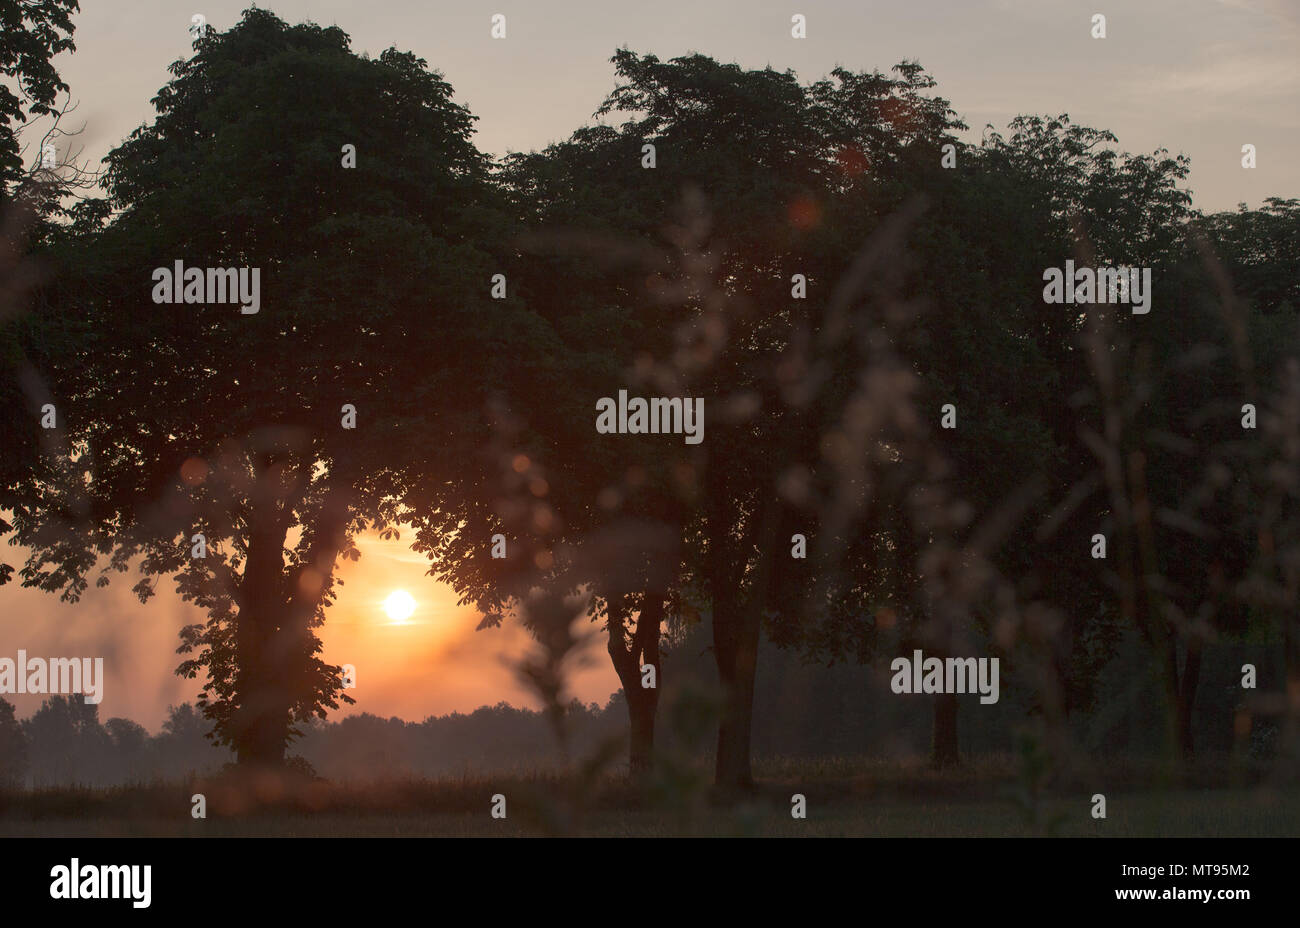 29 May 2018, Germany, Rehda-Wiedenbrueck: The sun rises in front of a row of trees. Photo: Friso Gentsch/dpa - Stock Image